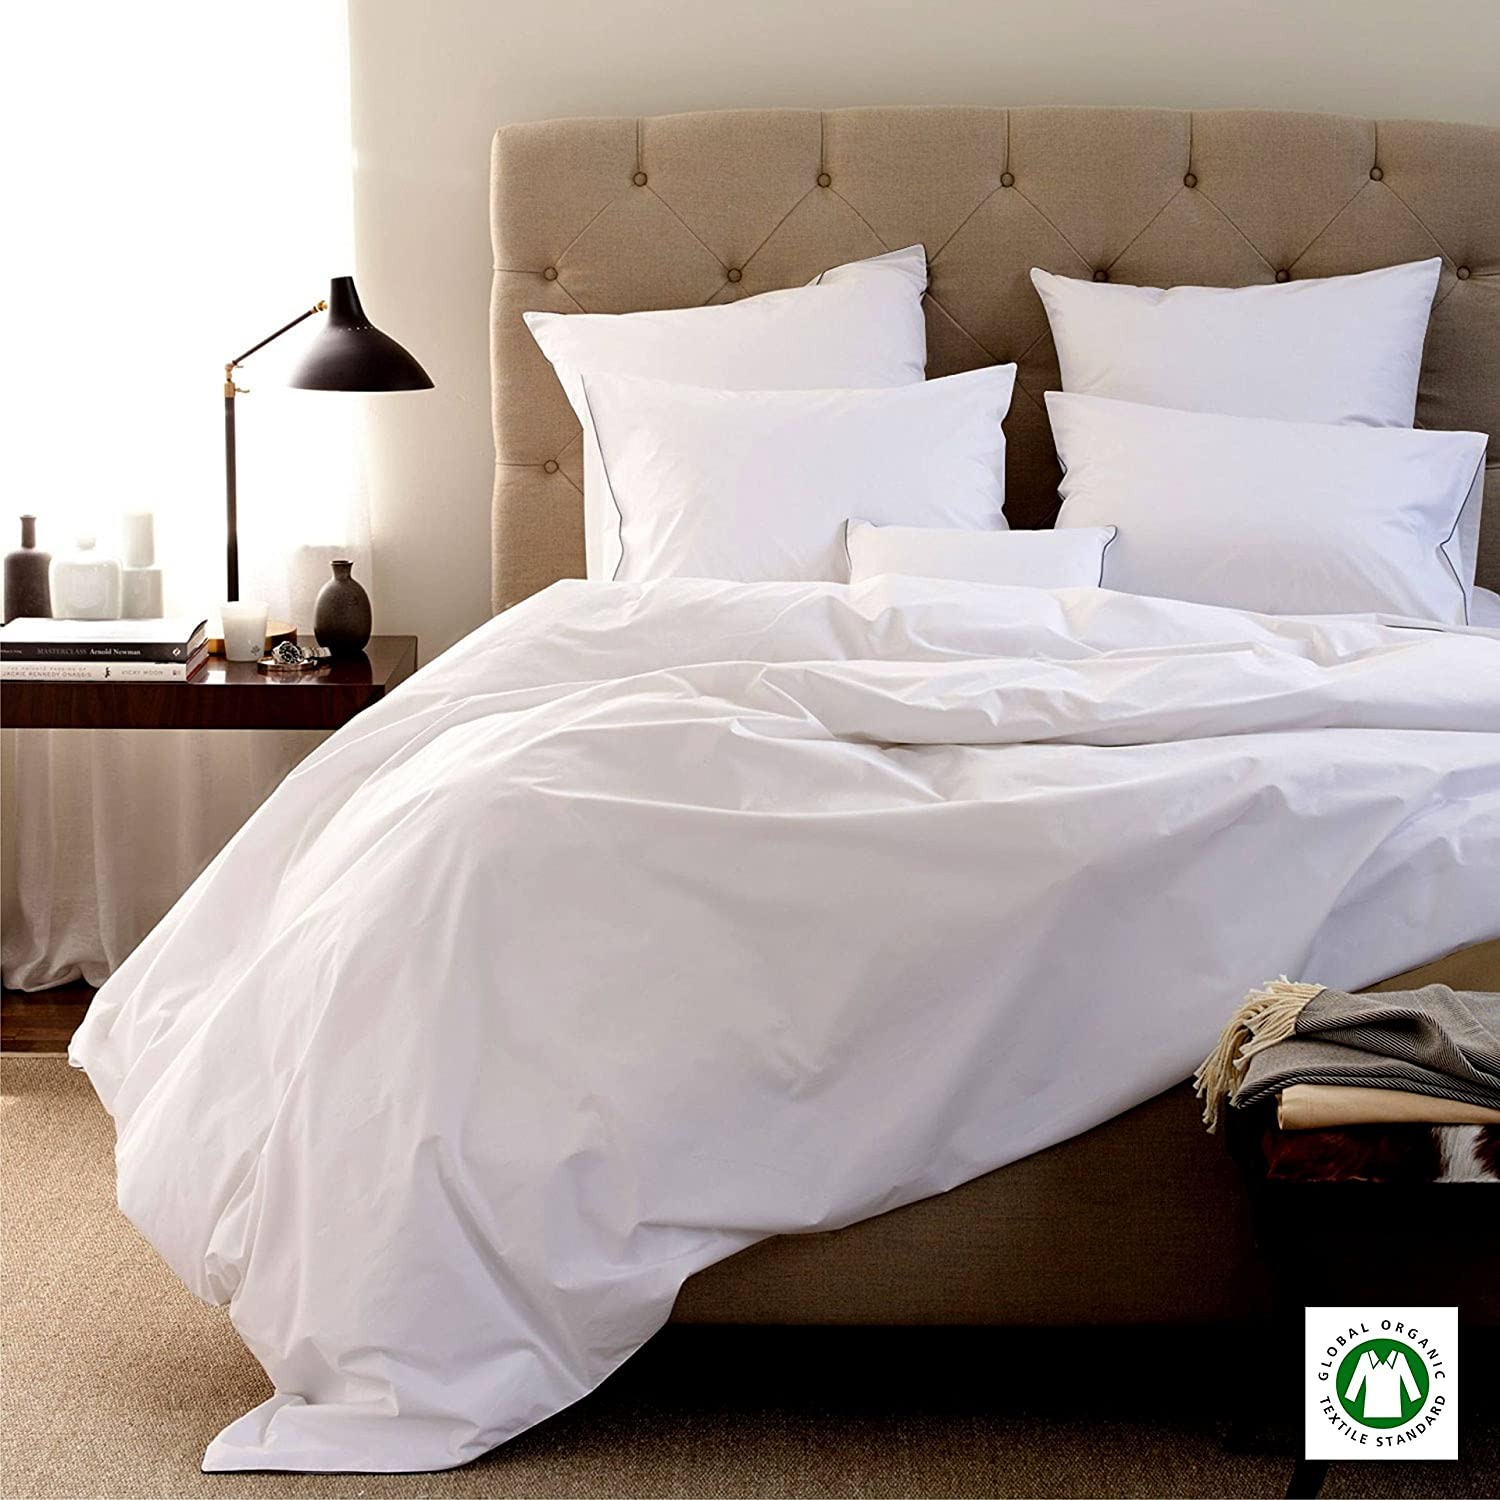 Attirant Amazon.com: Linen Souq MADE IN USA Sheet Set 100% Organic Cotton Italian  Finish 800 Thread Count, WHITE GOTS Certified 15 Inches Deep Pocket Solid  QUEEN: ...